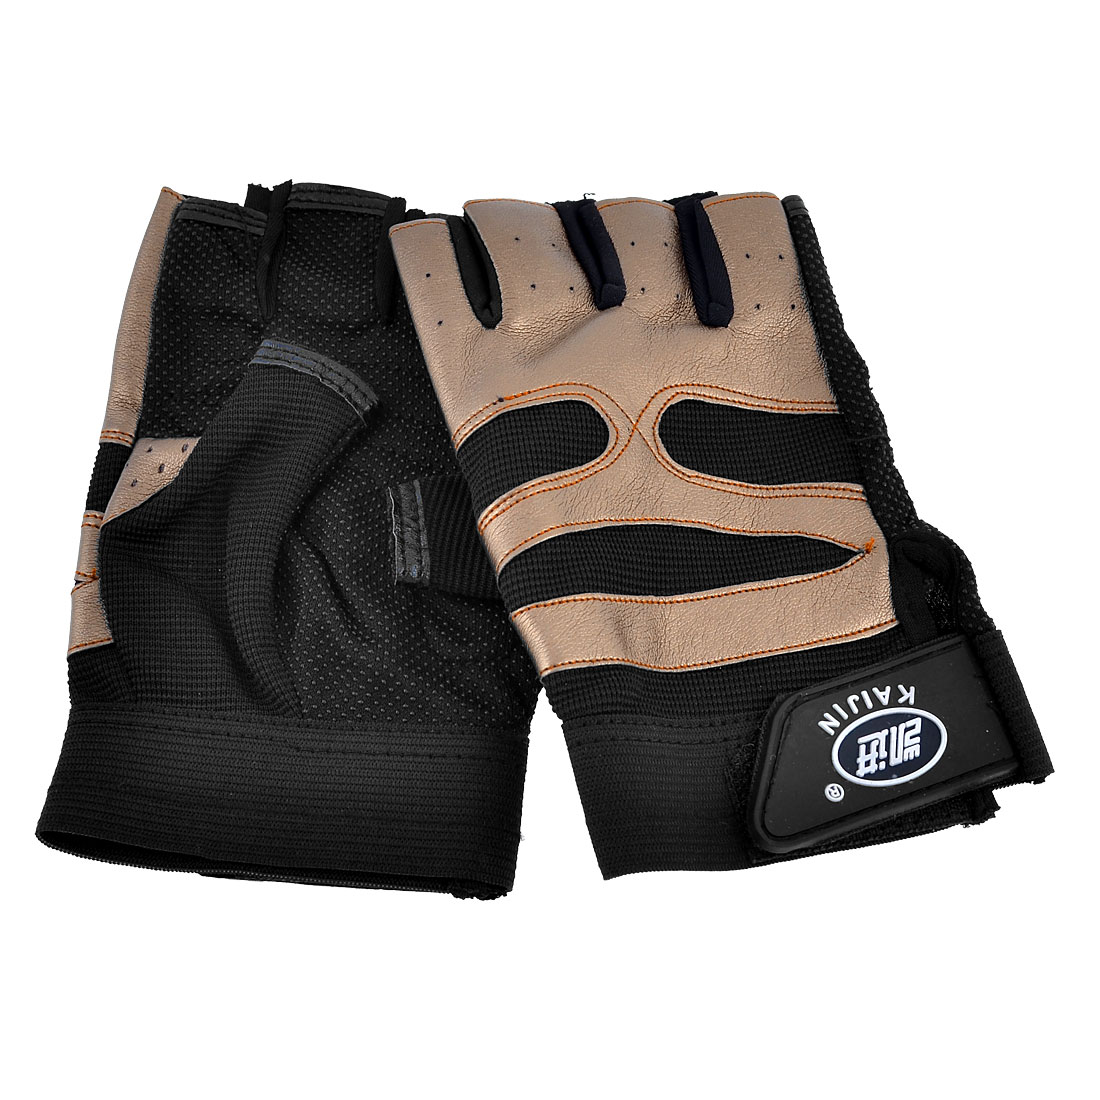 Pair Men Women Black Brown Mesh Neoprene Spandex Rubber Half Finger Sports Glove